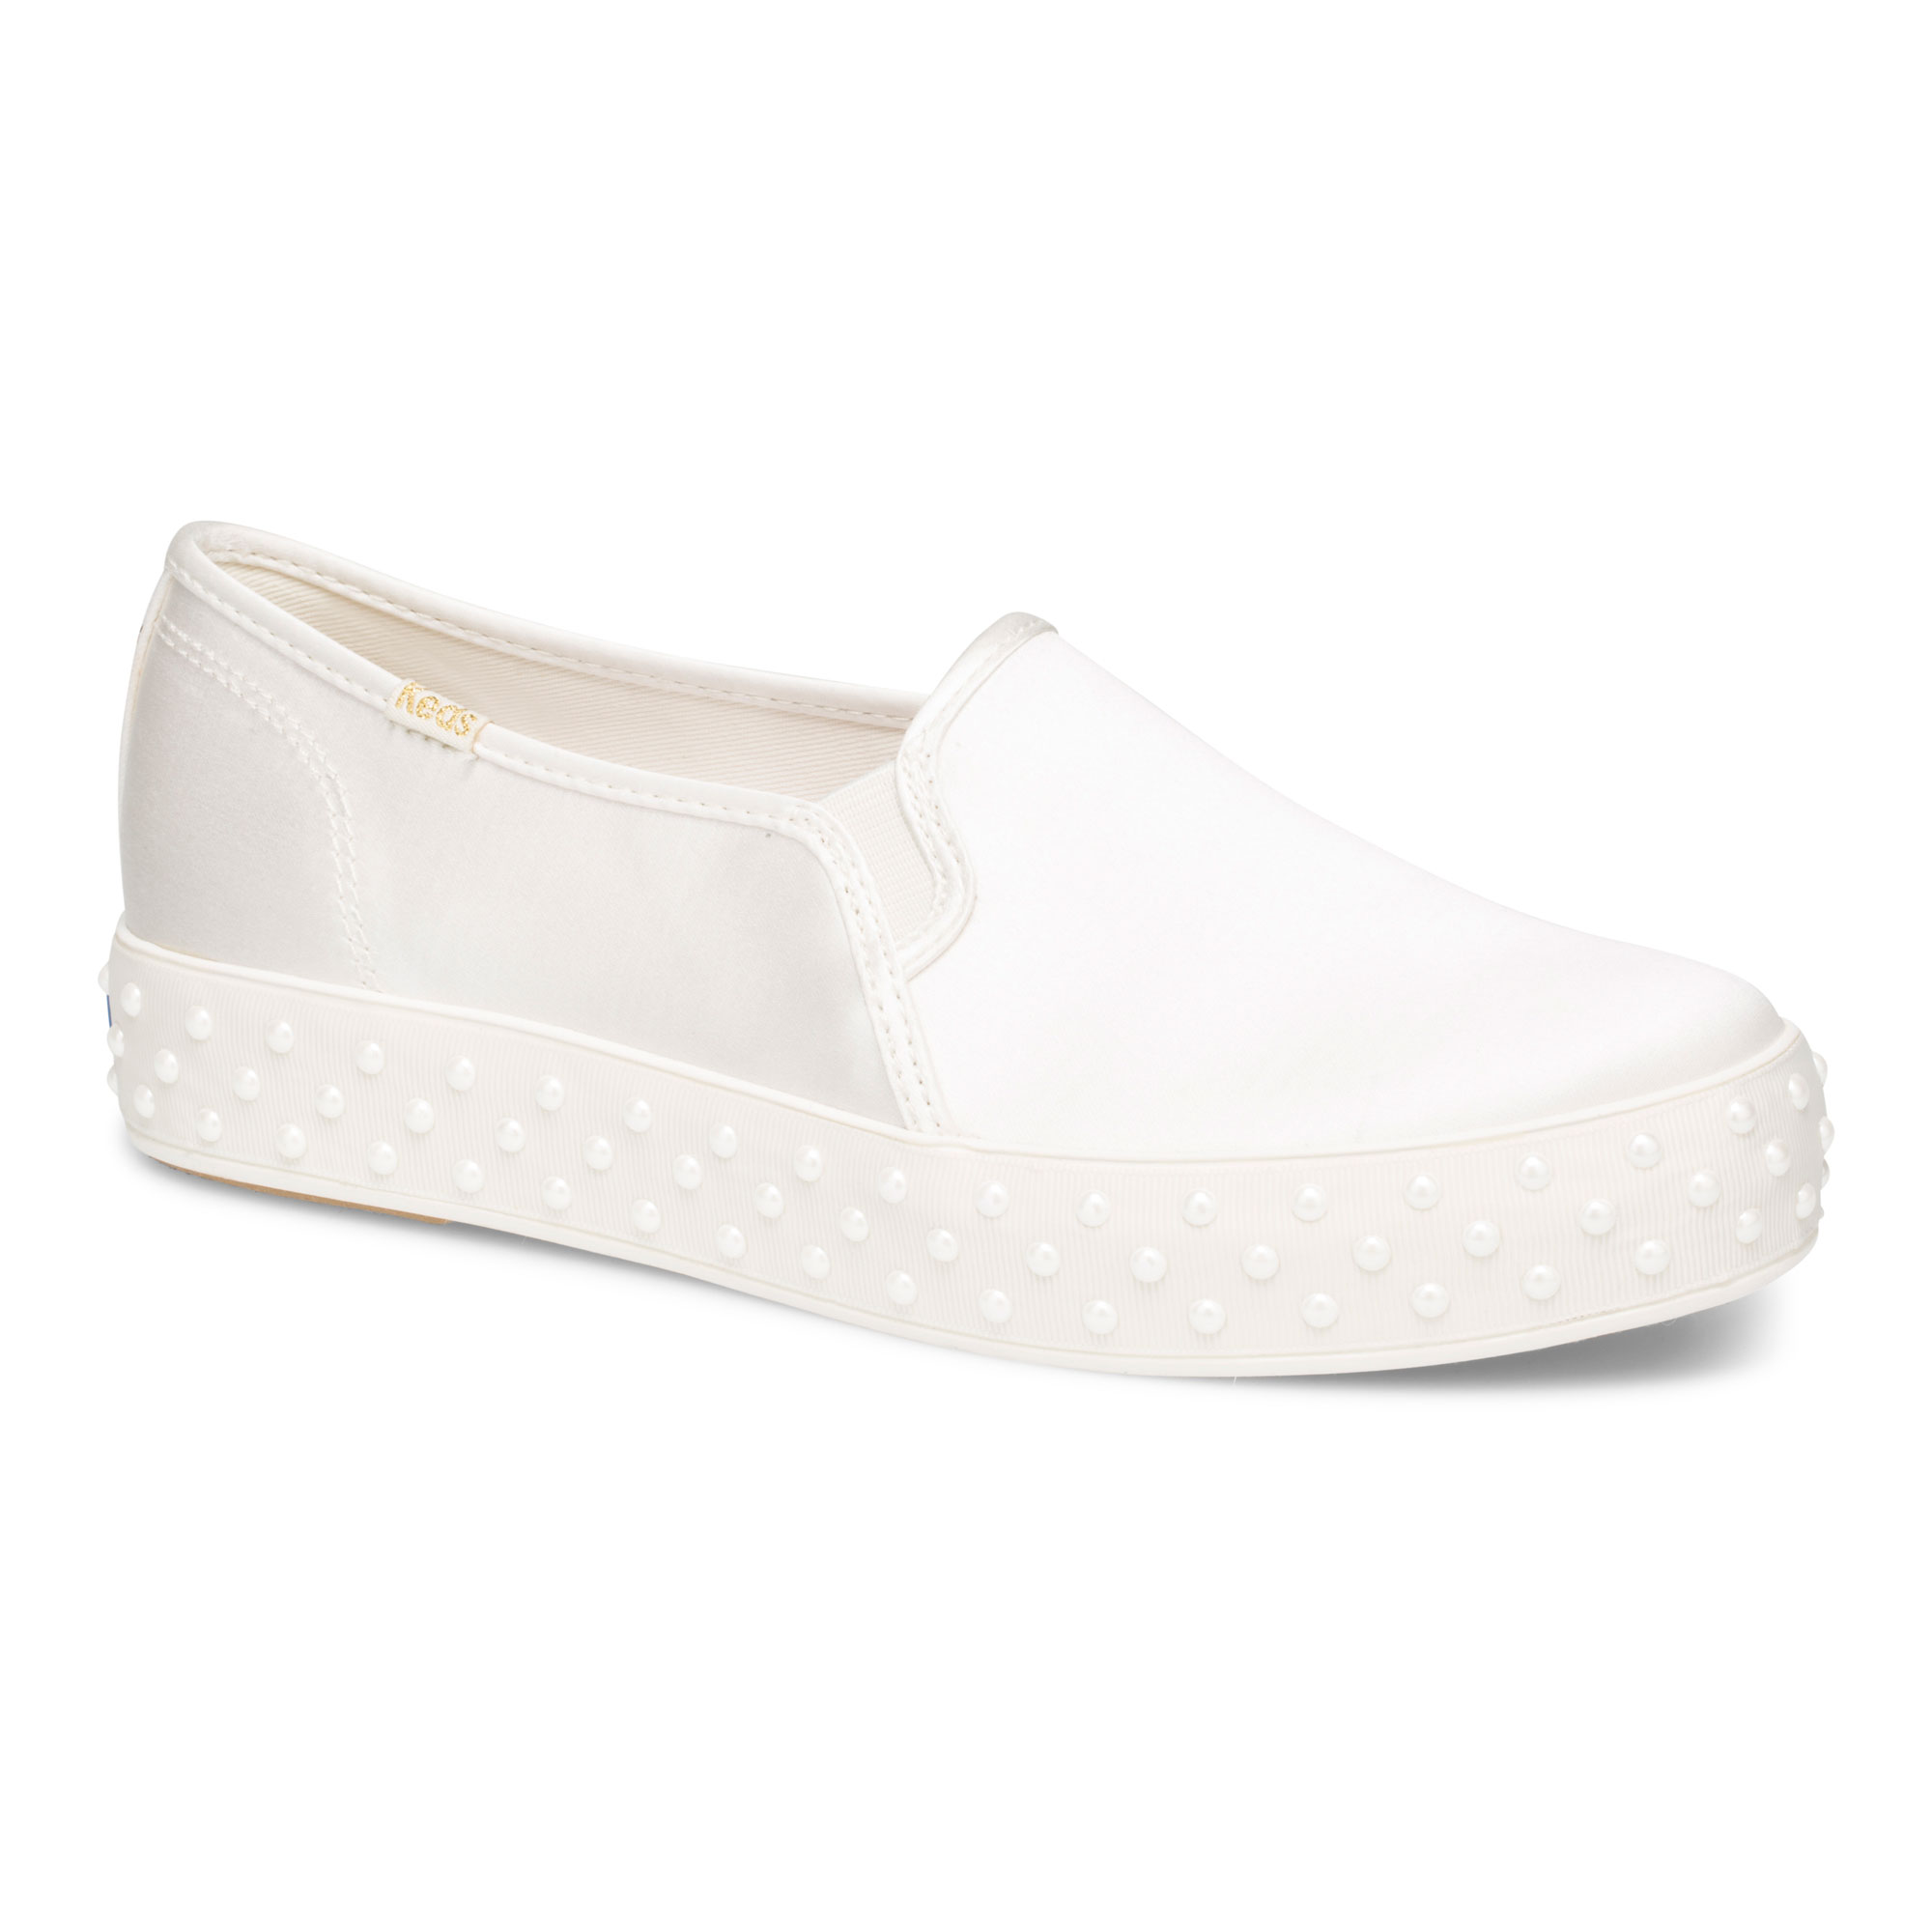 e08ee5855f0b Keds x Kate Spade New York Triple Decker Satin with Pearl Foxing